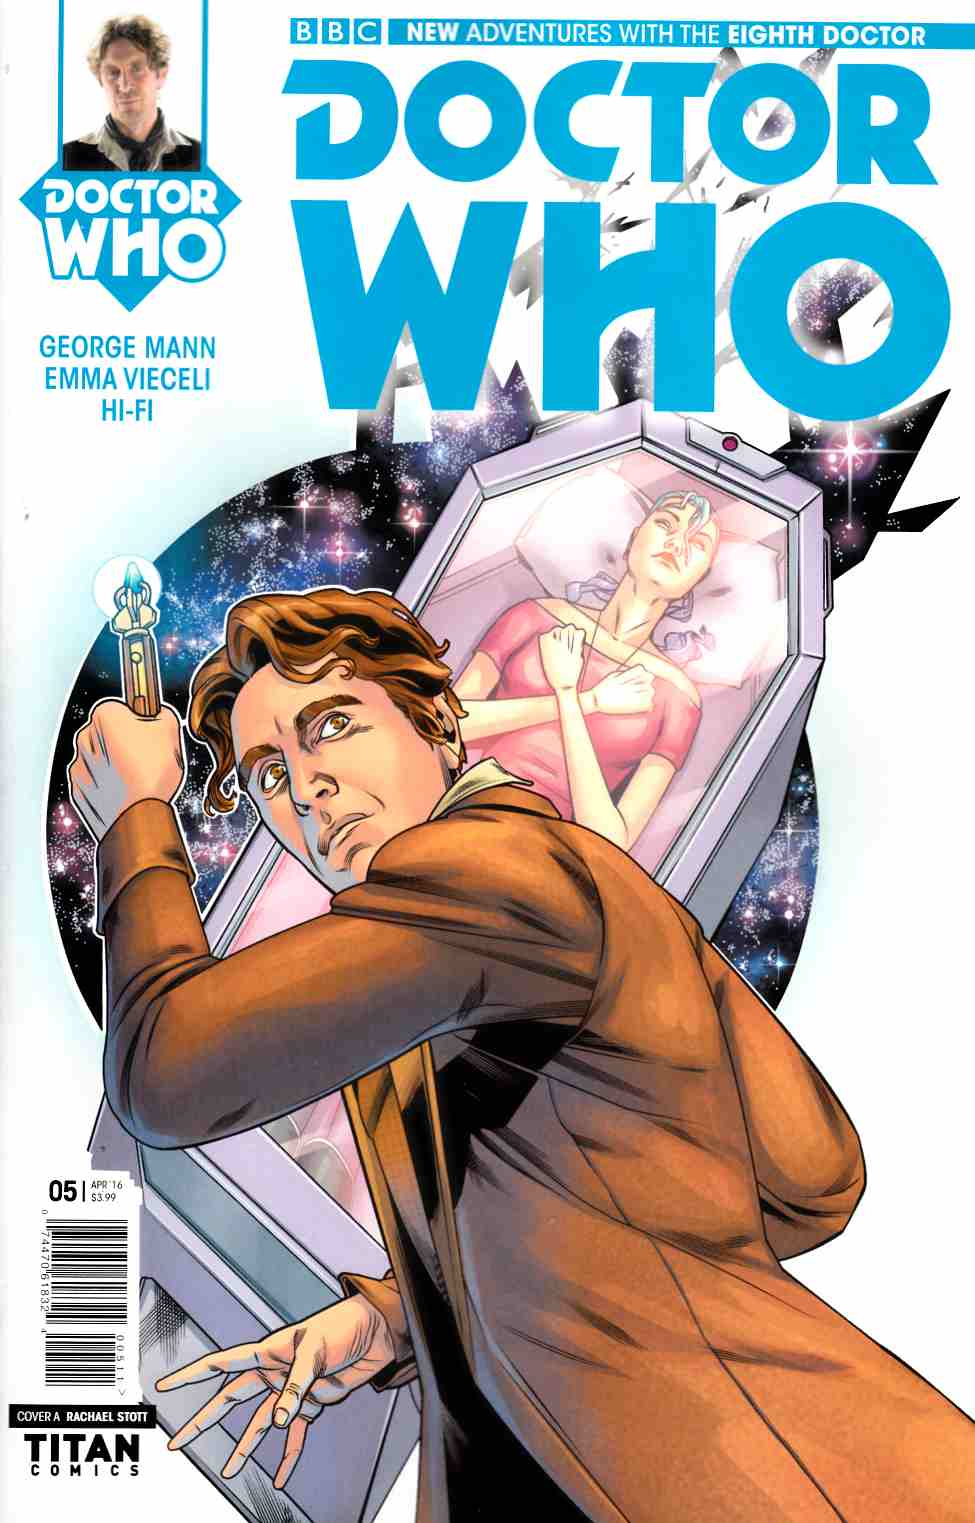 Doctor Who 8th Doctor #5 Cover A- Stott [Titan Comic] THUMBNAIL